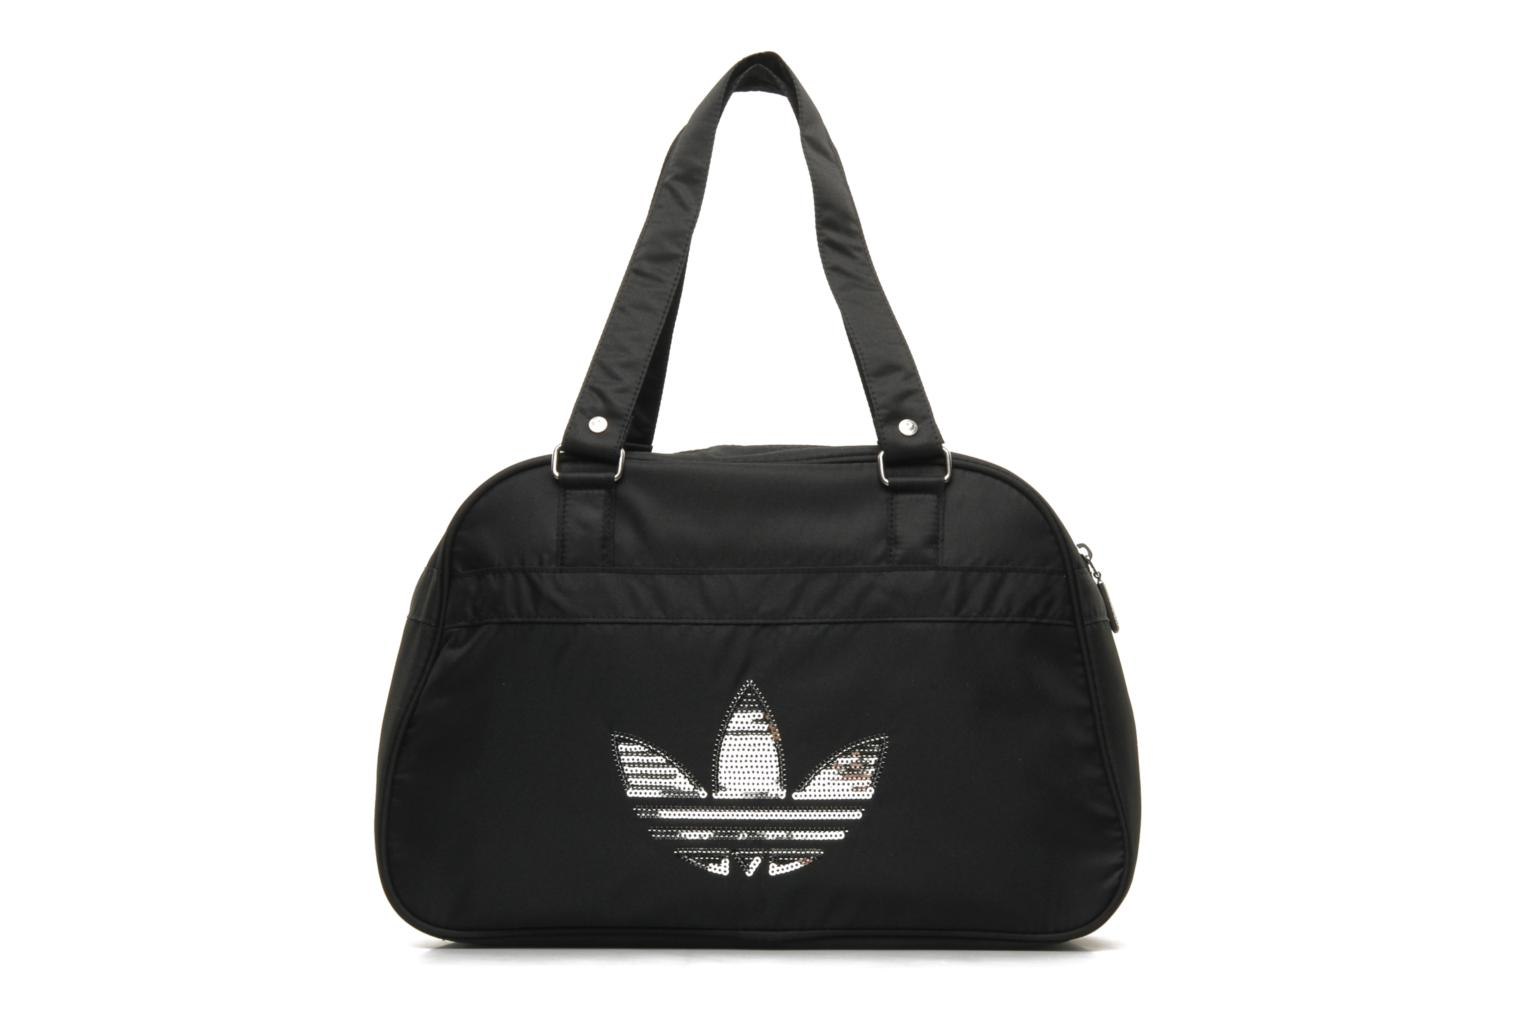 WMN SY BOWLING BAG Black/metallic Silver